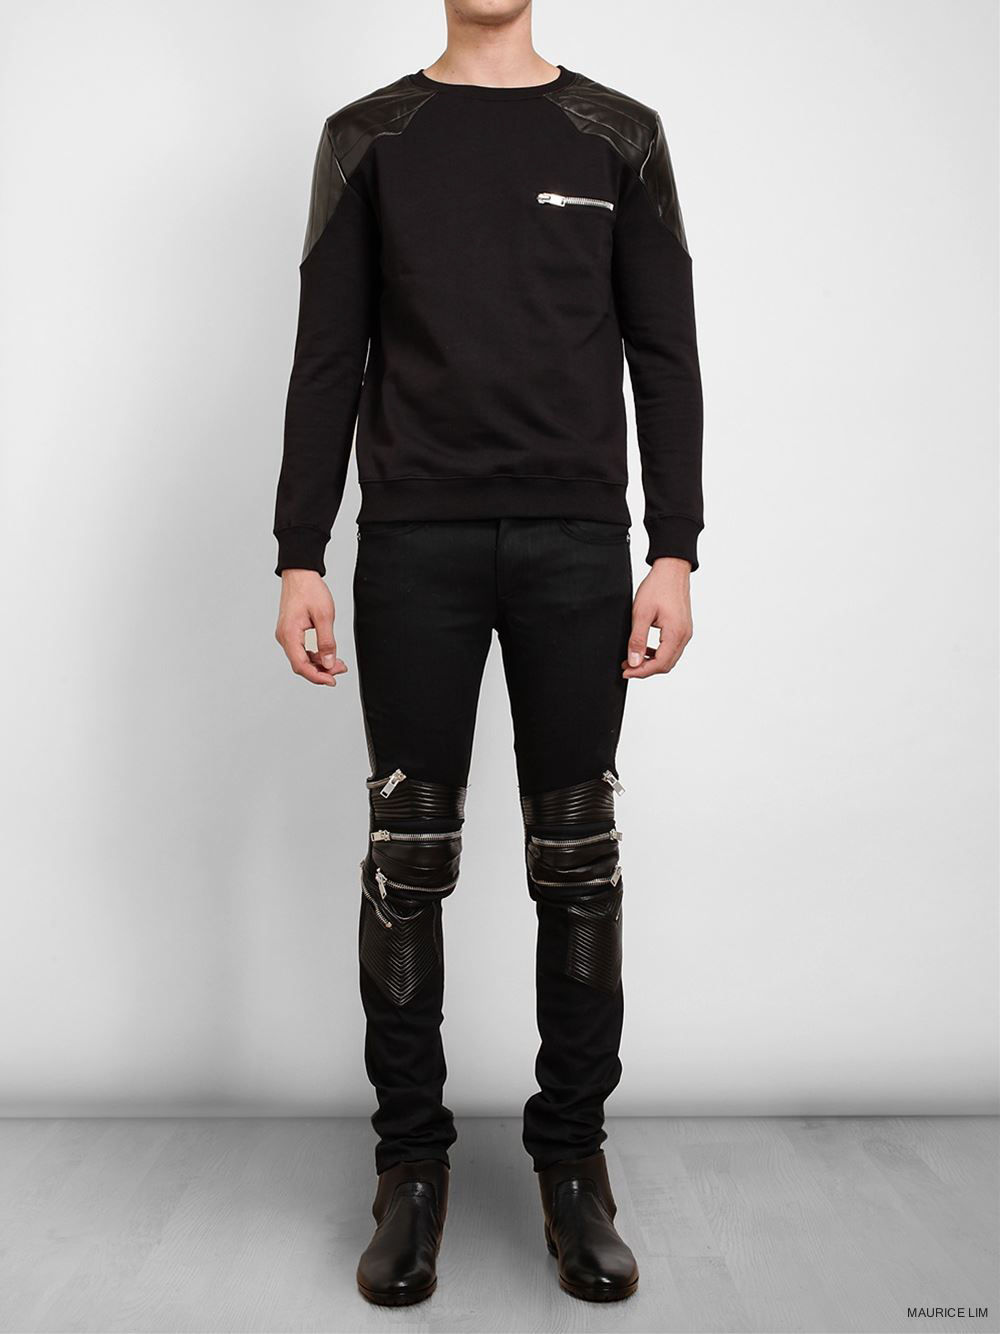 7ff543efdd2 Bergdorf Goodman – Saint Laurent Biker Zipper-Knee Denim Jeans. Saint  Laurent denim jeans have a biker style with leather and zippers covering  the knees.